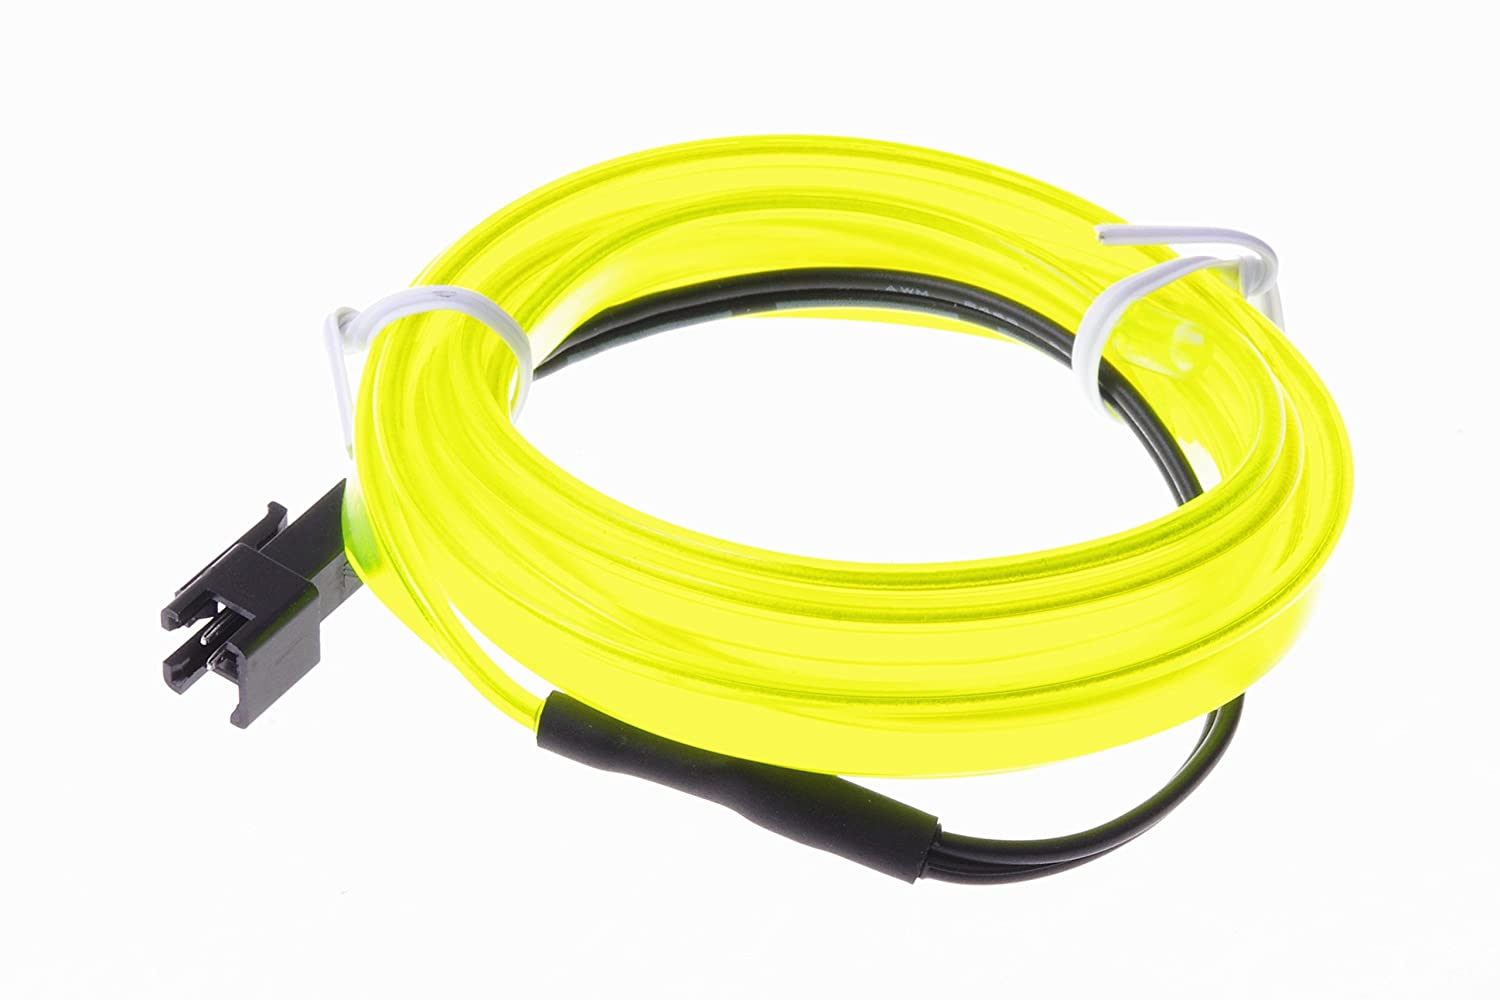 SMAKN 1M EL Wire Neon Flexible Glow Light Rope for Car Dance Party Adorn Strip Yellow LEPAZIA2559